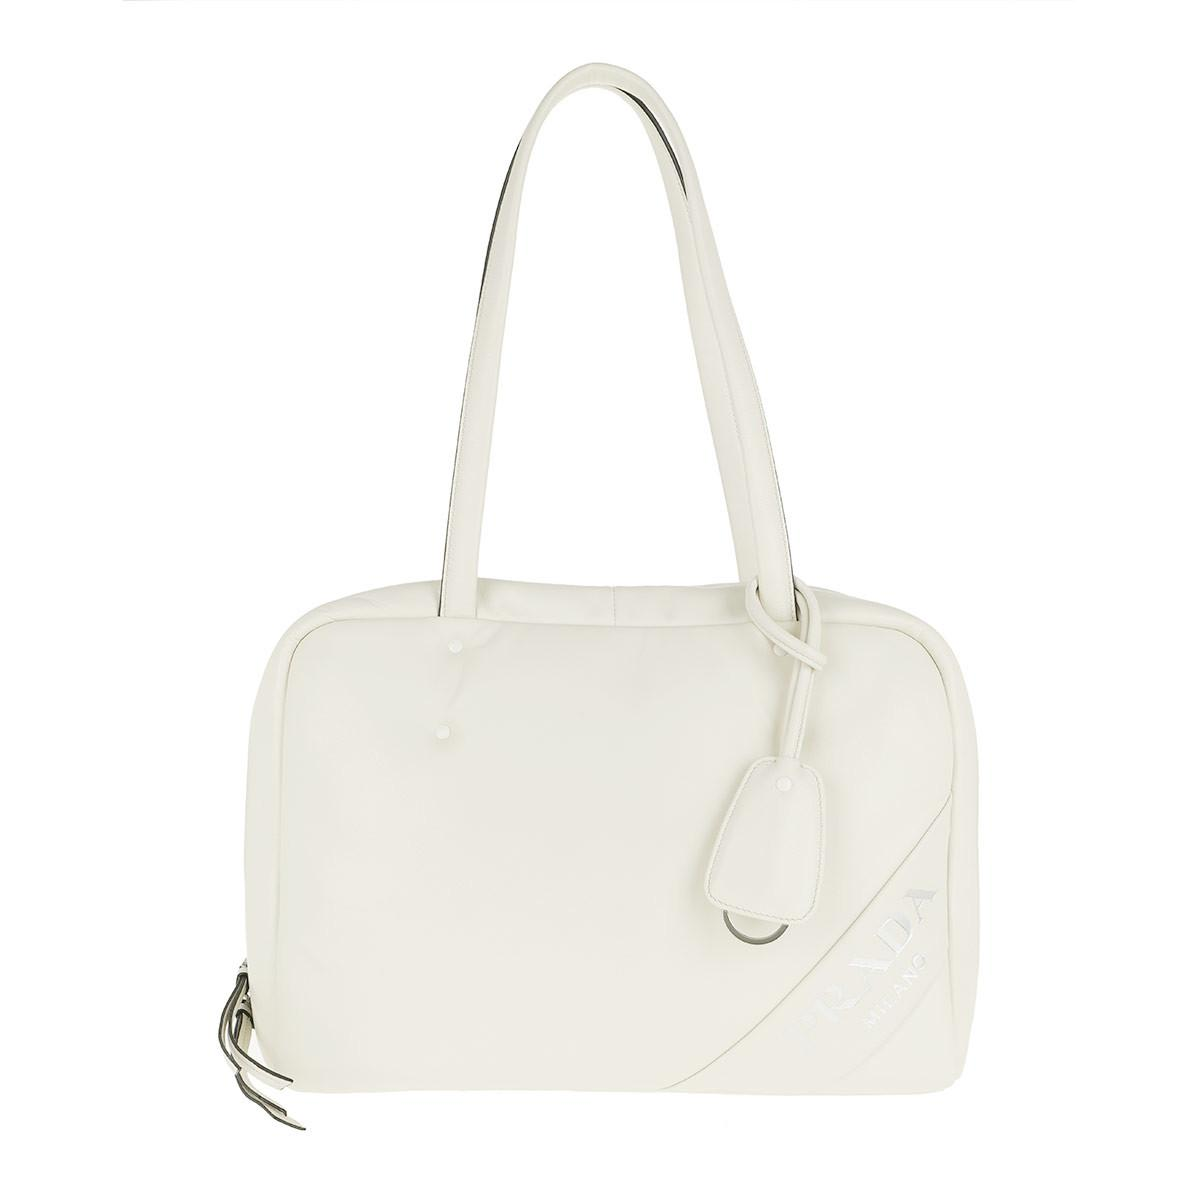 a7d30b5e81e8 Prada Padded Tote Bag Medium White in White - Lyst